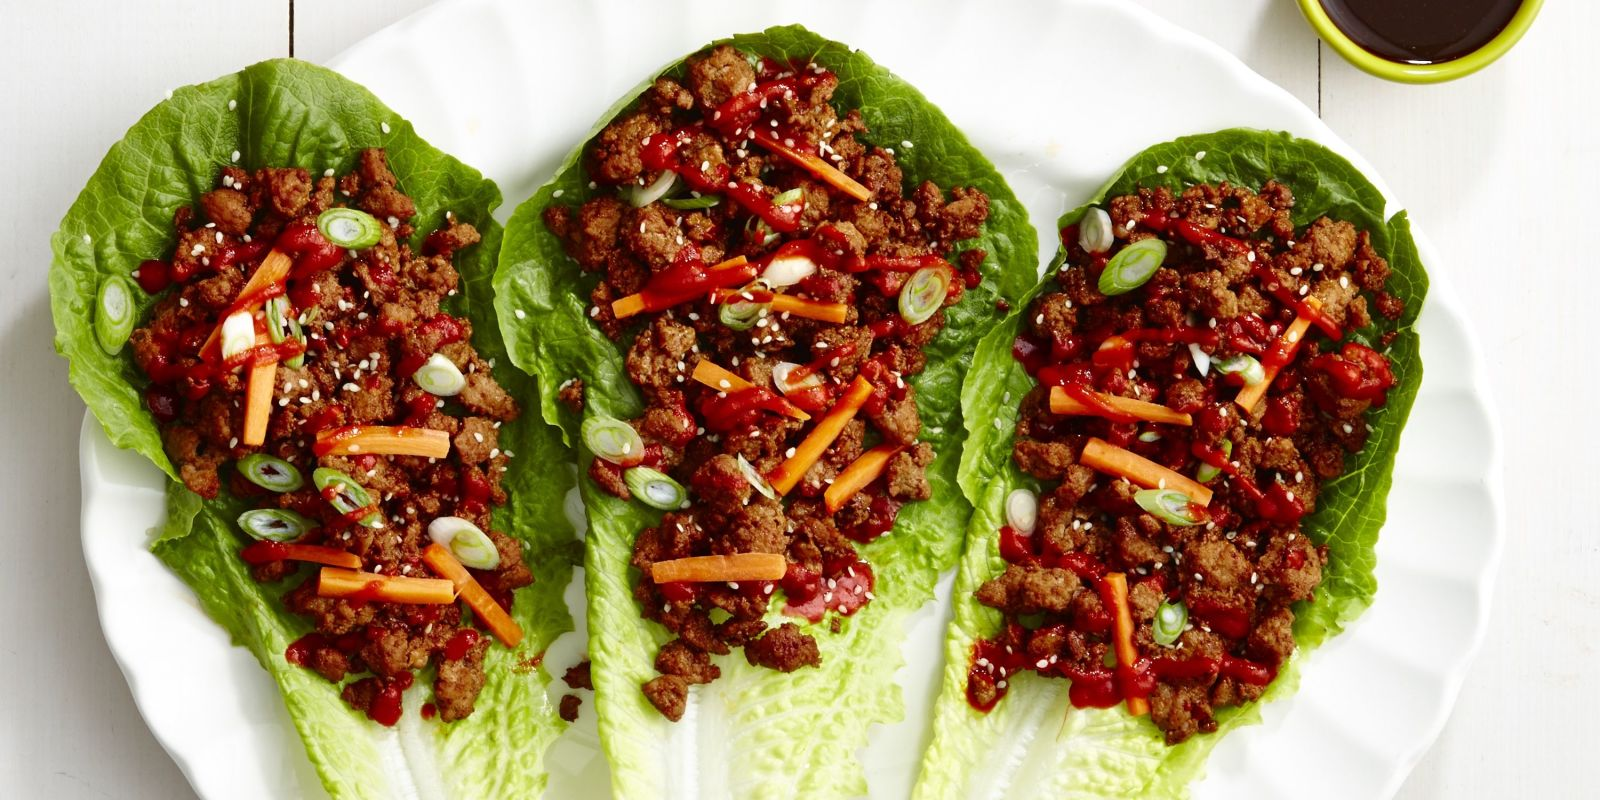 Best Ground Pork Lettuce Wraps - How to Make Ground Pork ...